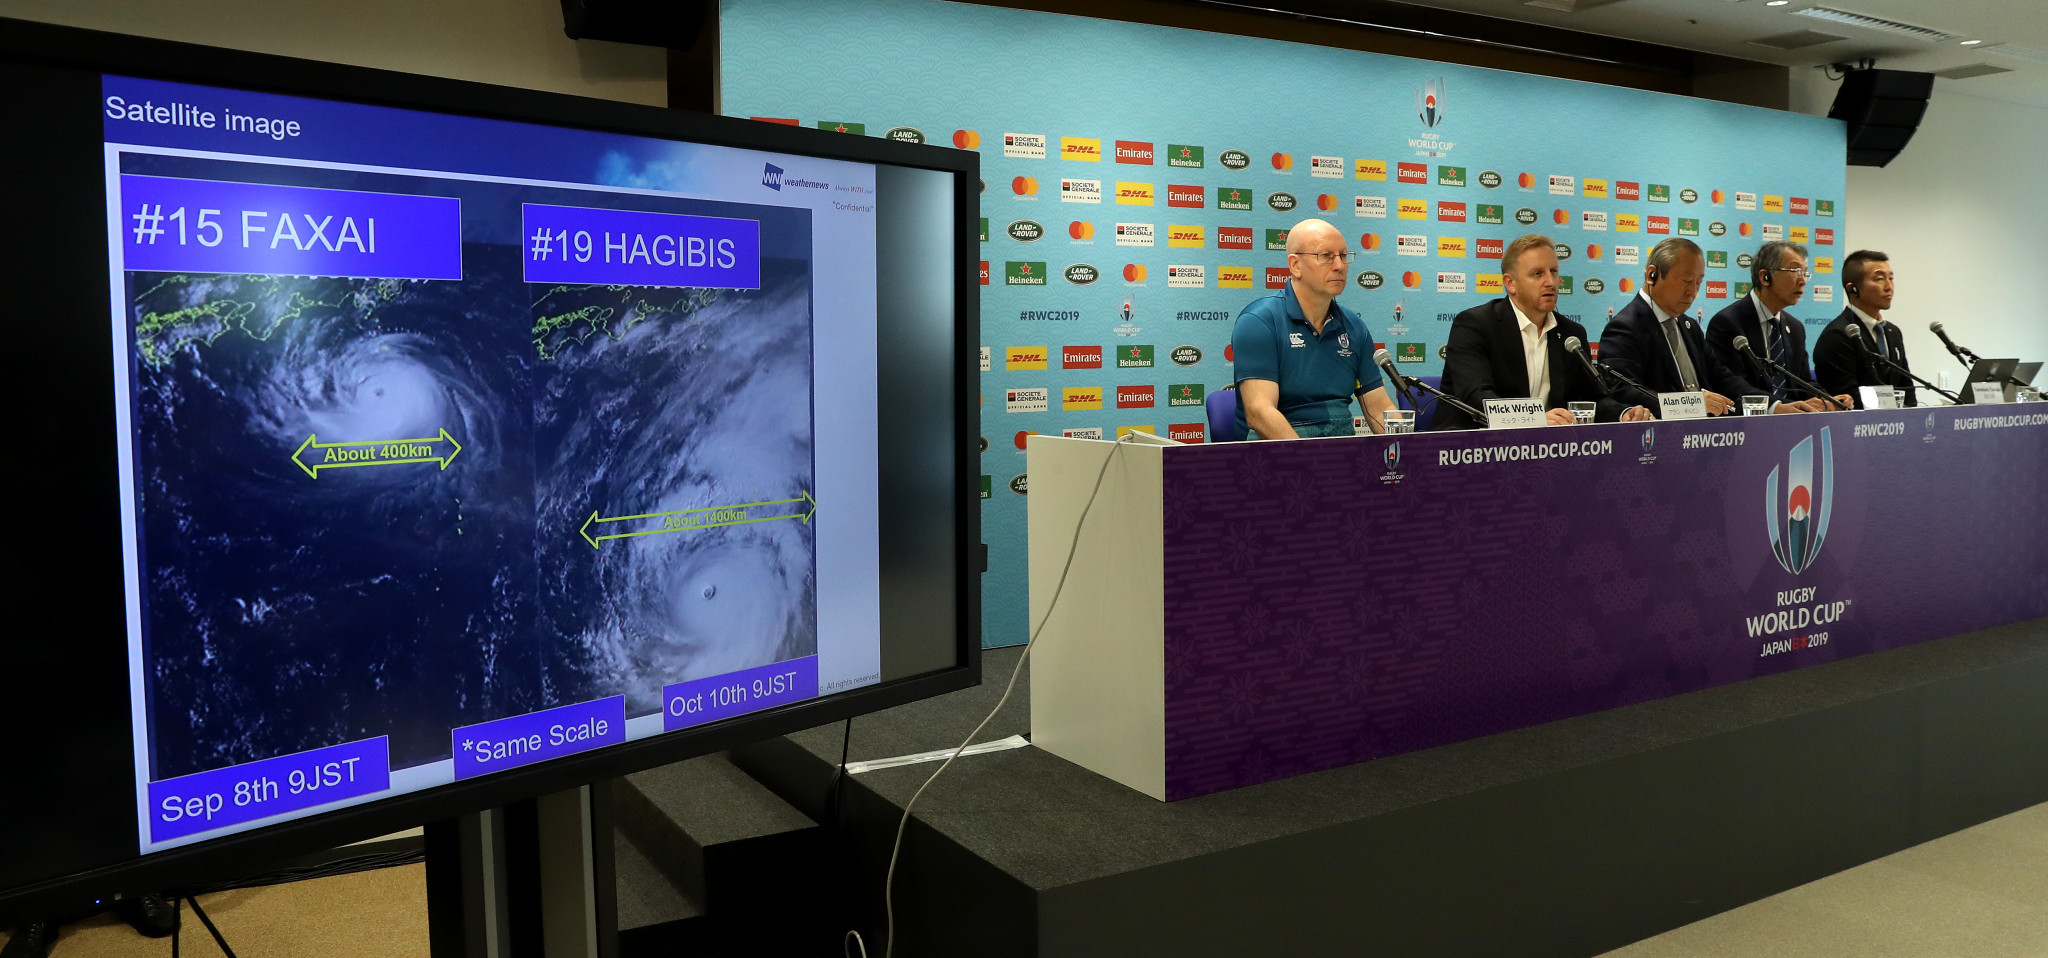 Typhoon Hagibis has been a major headache for Rugby World Cup organisers ©Getty Images